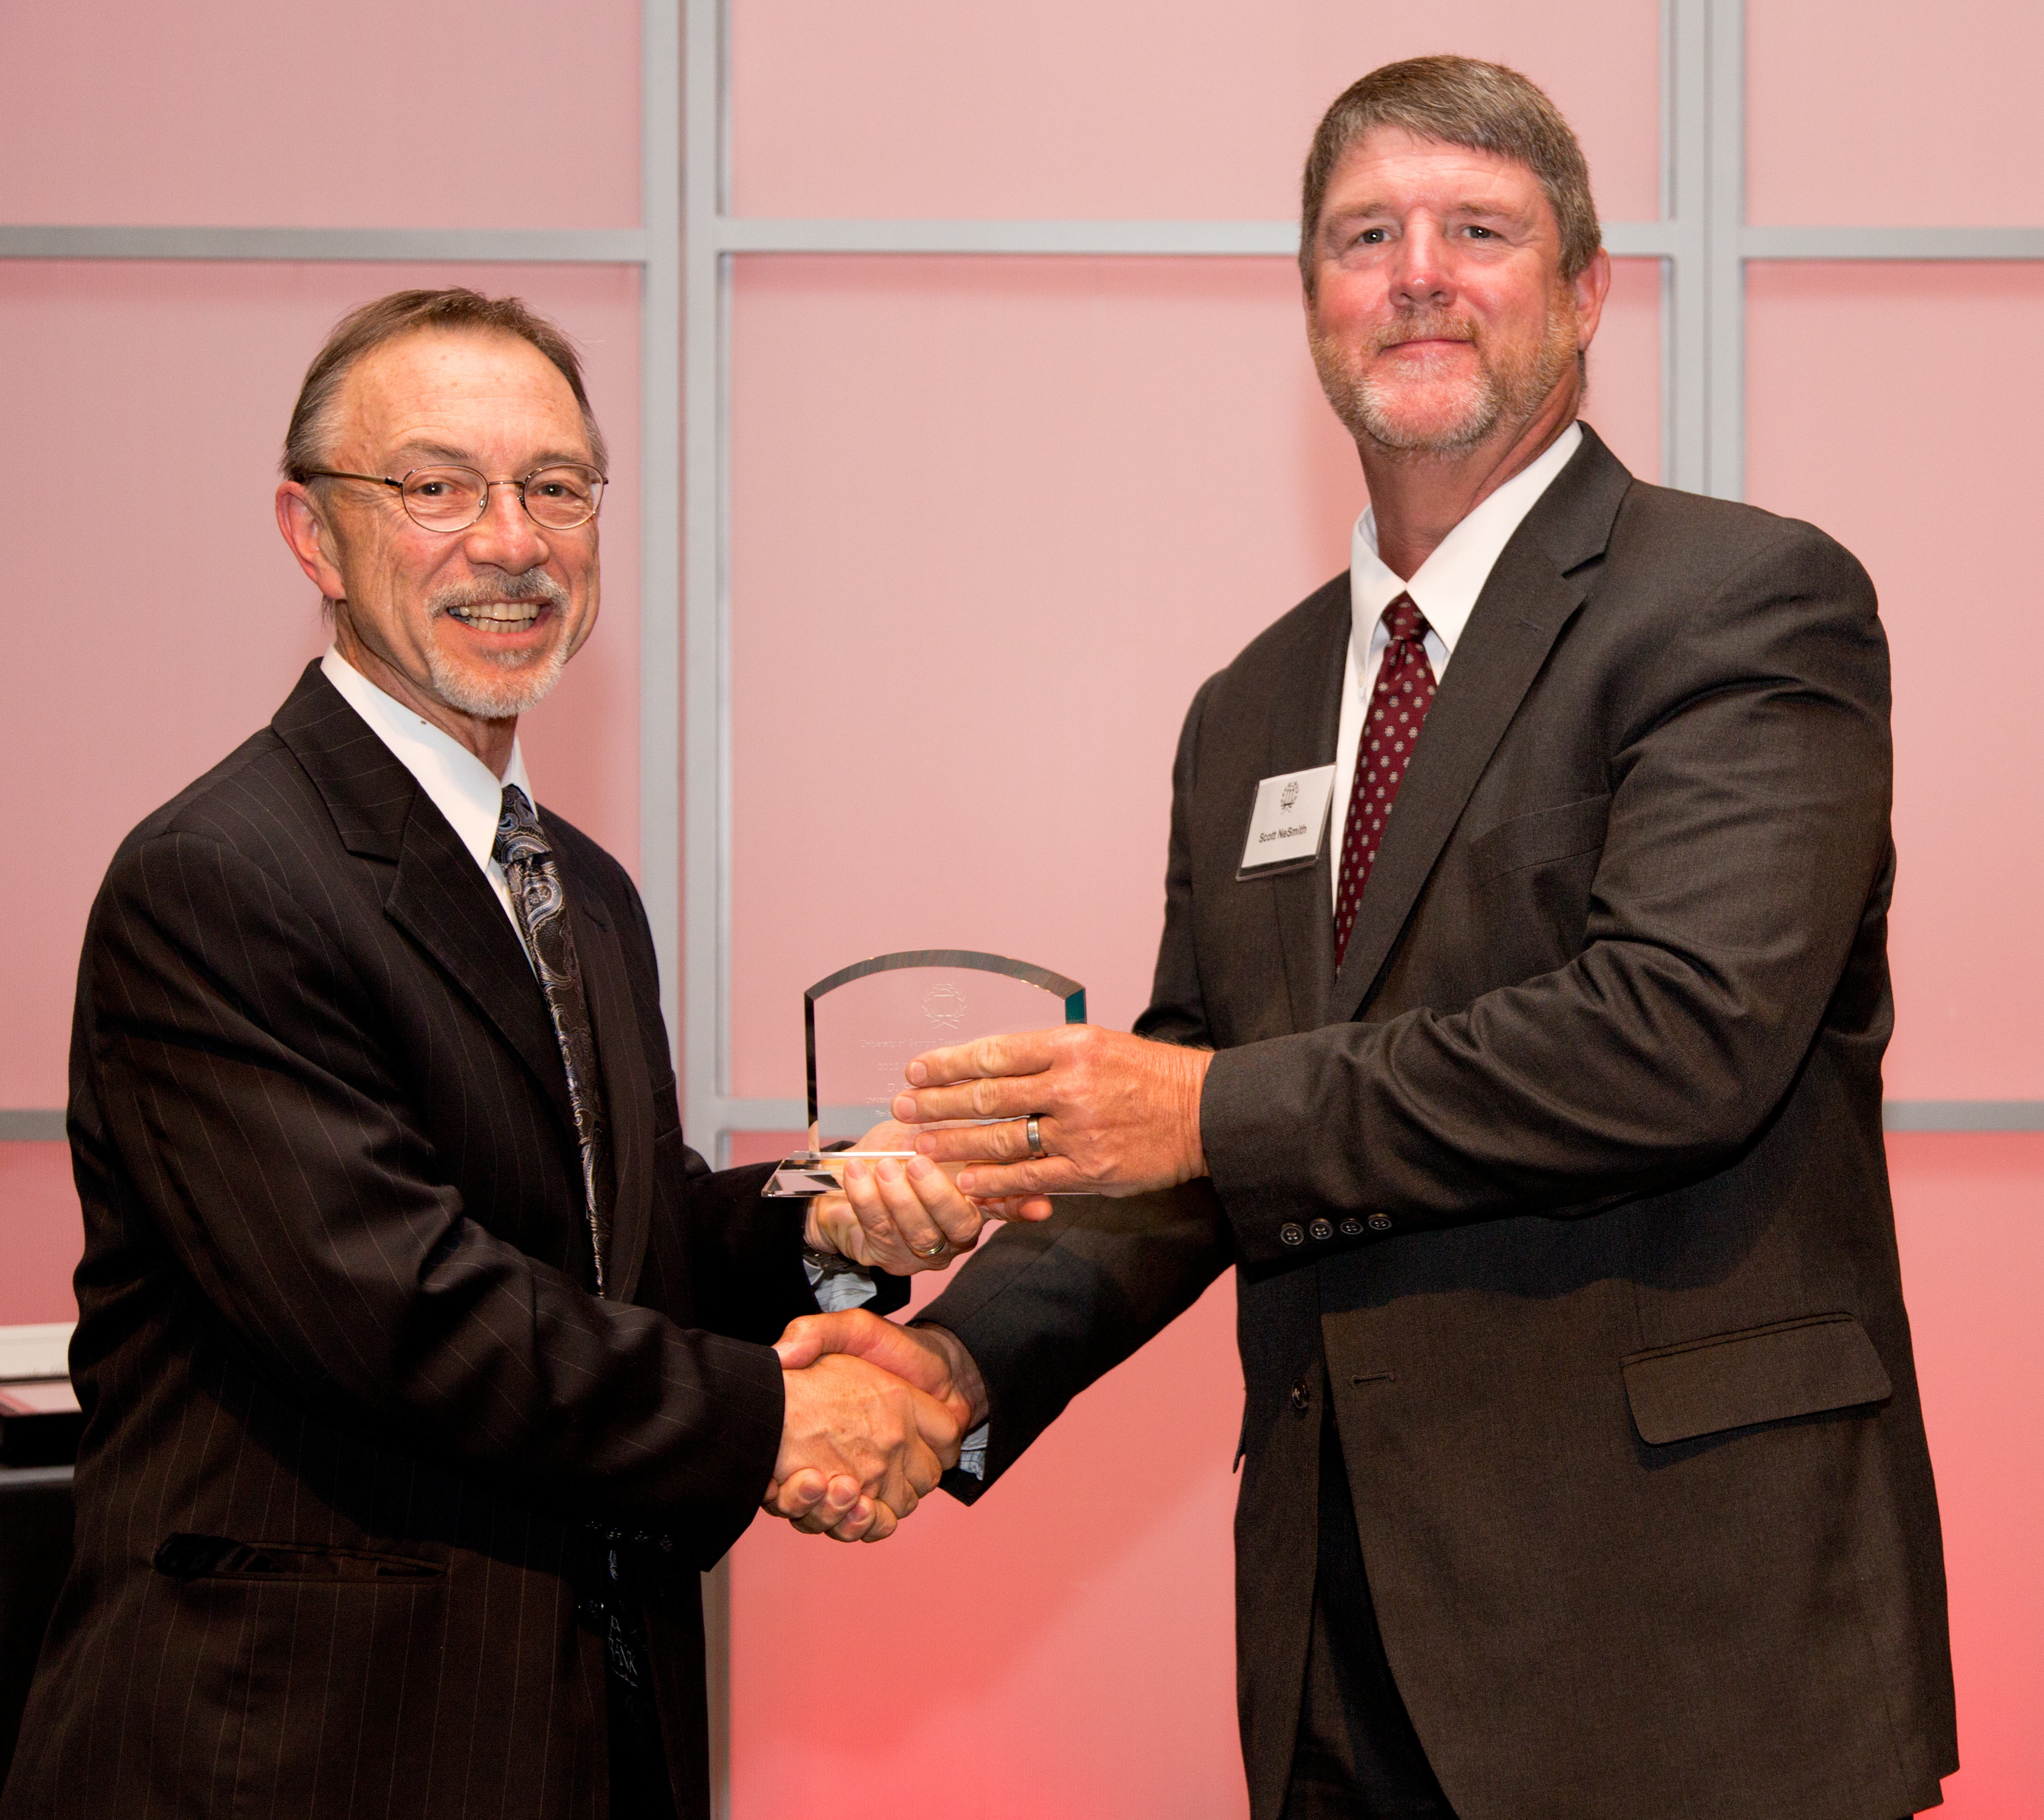 University of Georgia horticulturist Scott NeSmith (right) is shown receiving the 2013 Inventor's Award from UGA Vice President for Research David Lee.